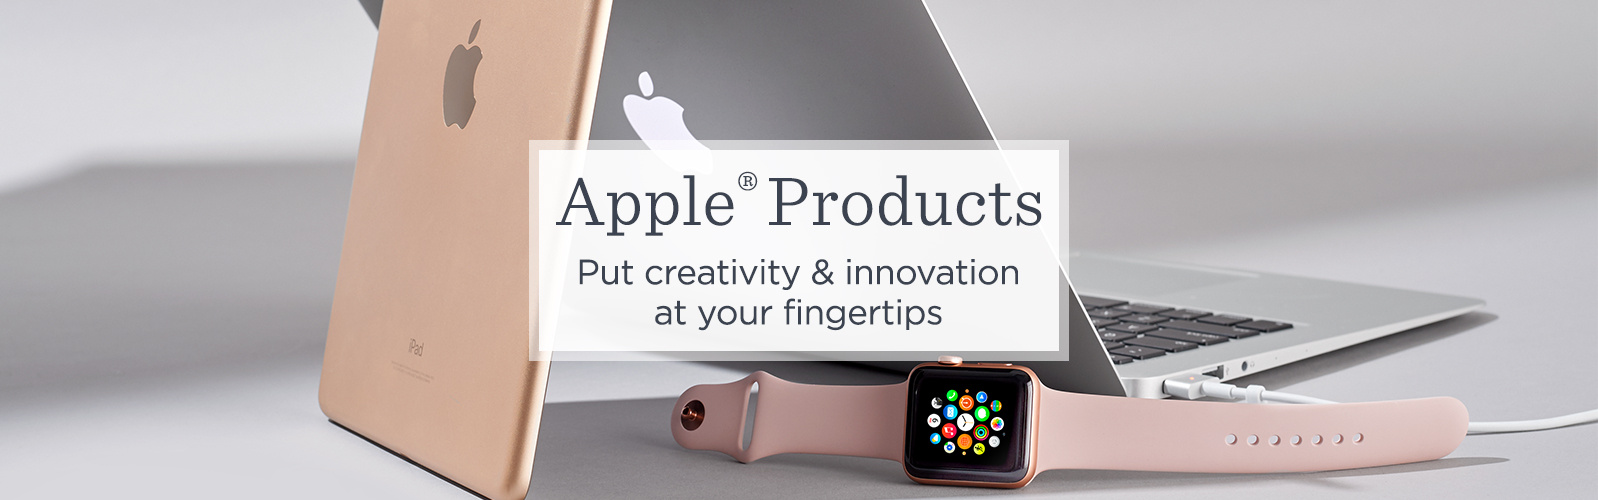 Apple® Products. Put creativity & innovation at your fingertips